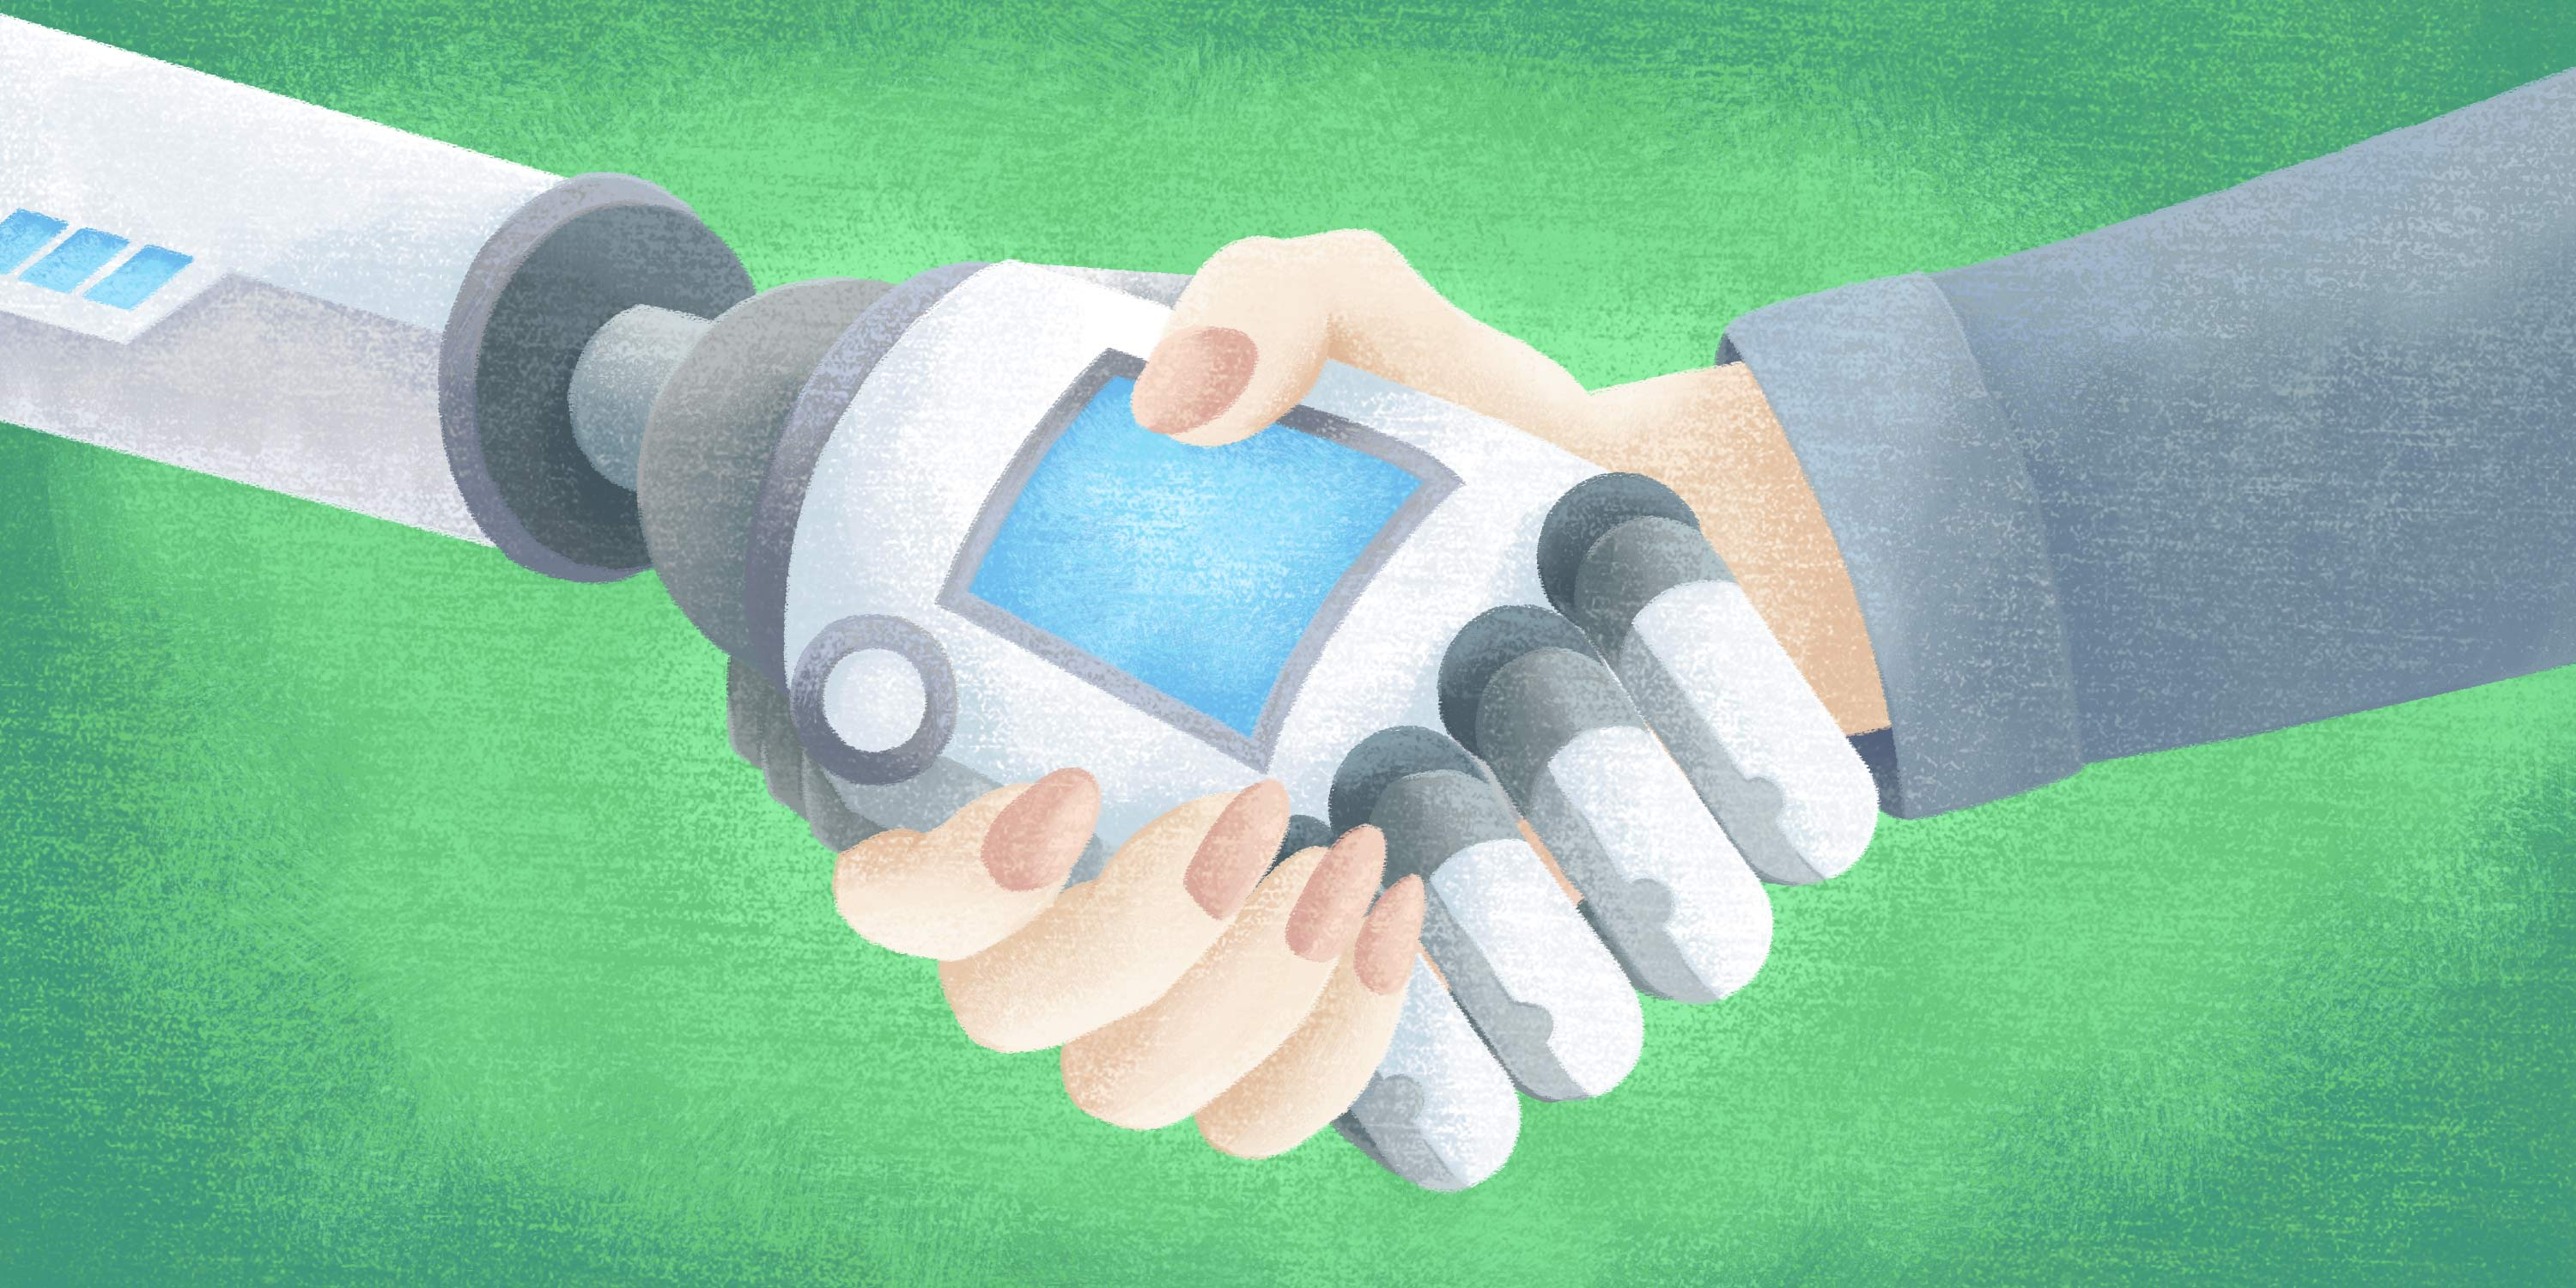 AI robot shaking hands with an accounts payable clerk